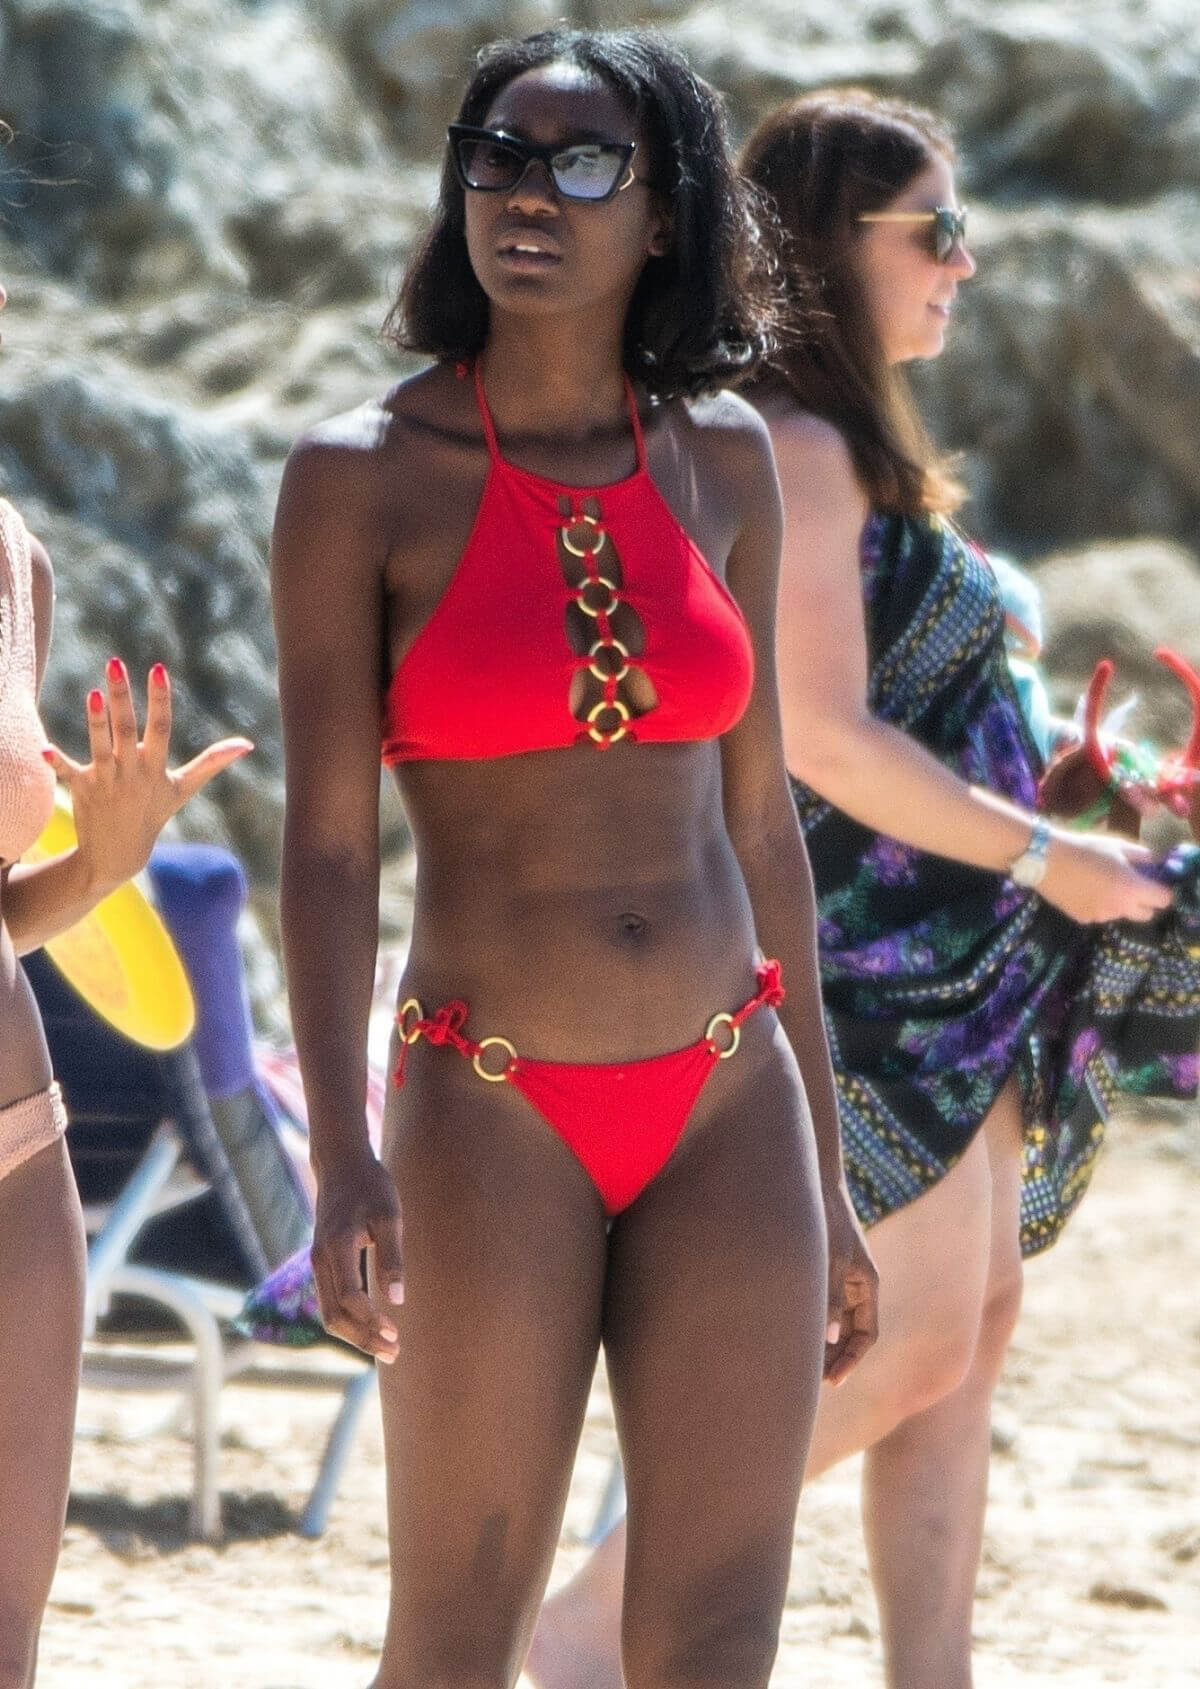 Cleavage Mouna Traore nudes (95 foto and video), Tits, Bikini, Instagram, underwear 2020